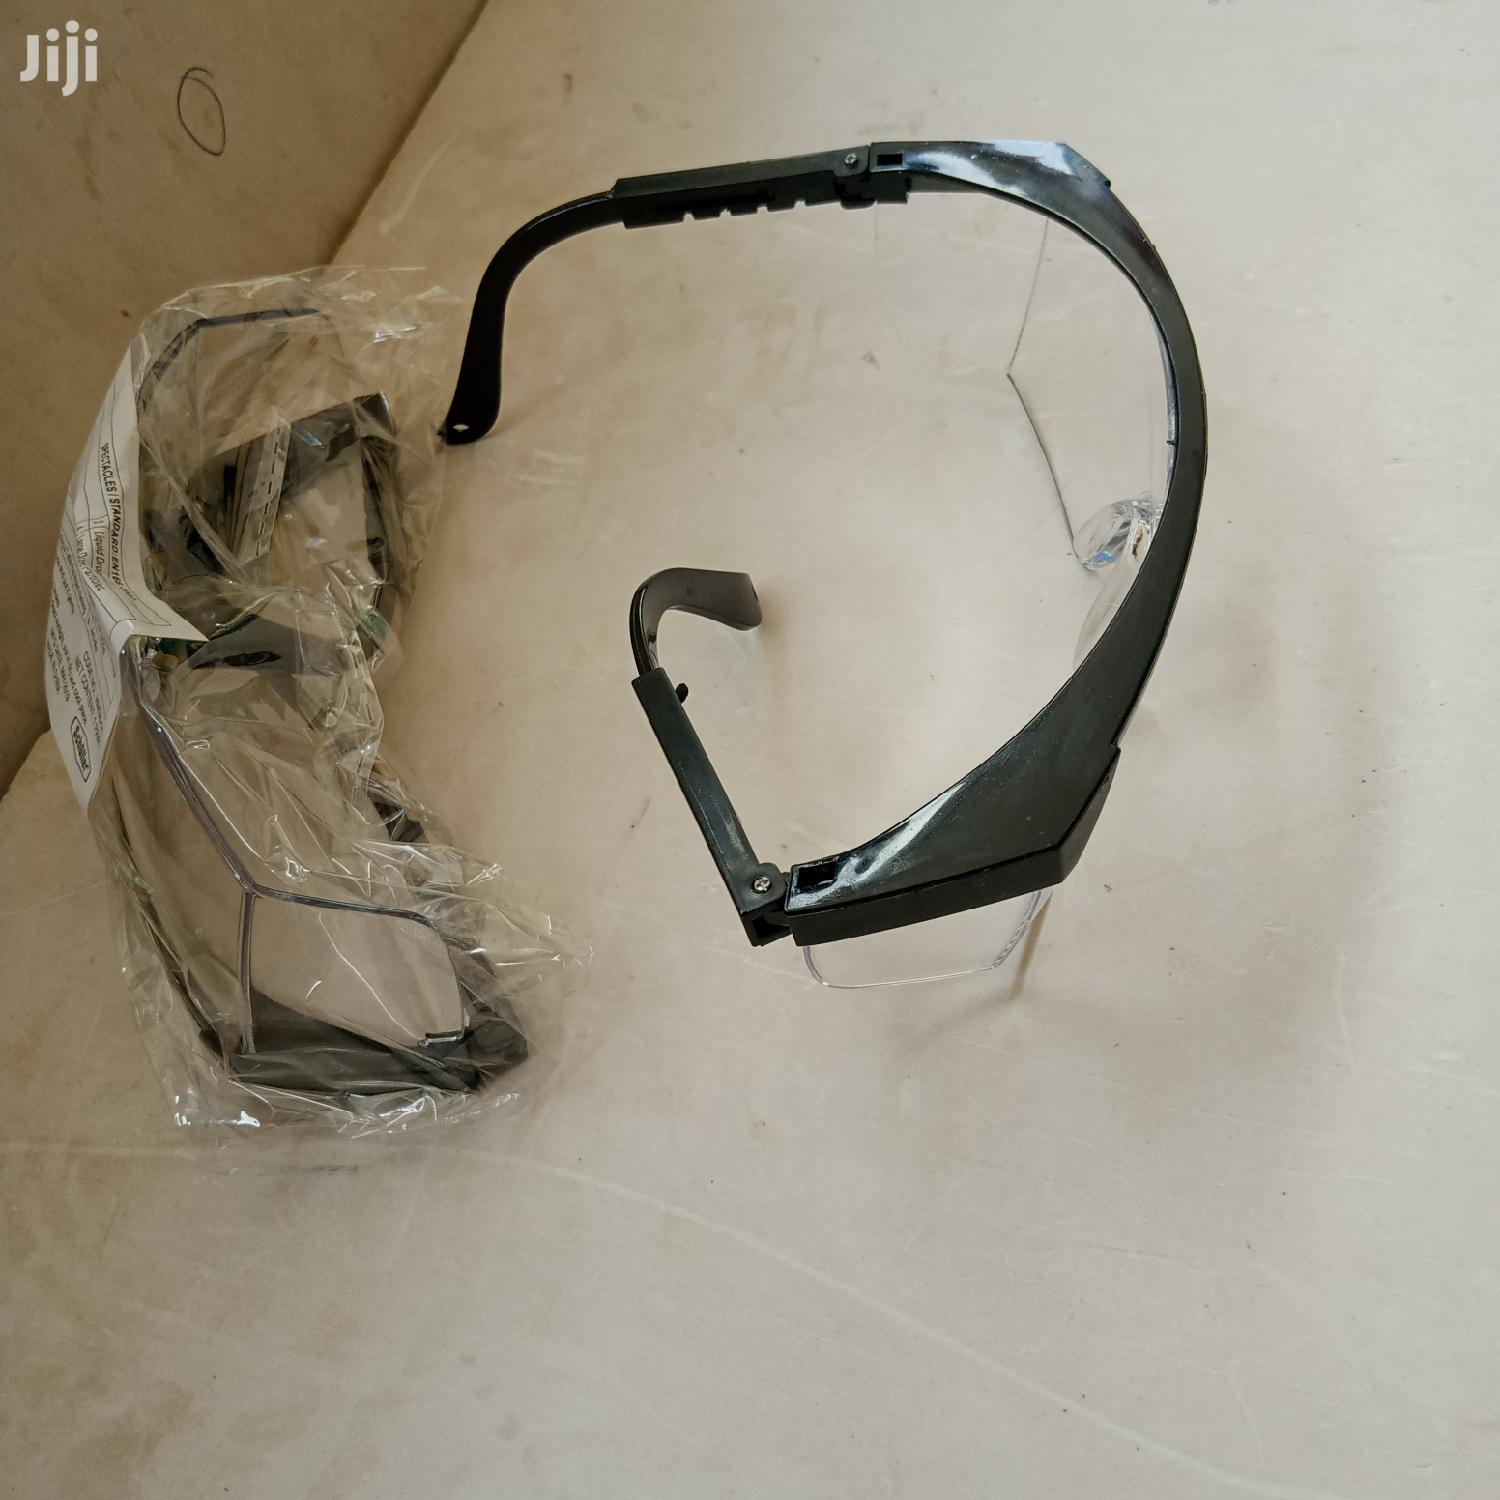 Clear Industrial Goggles | Safety Equipment for sale in Nairobi Central, Nairobi, Kenya